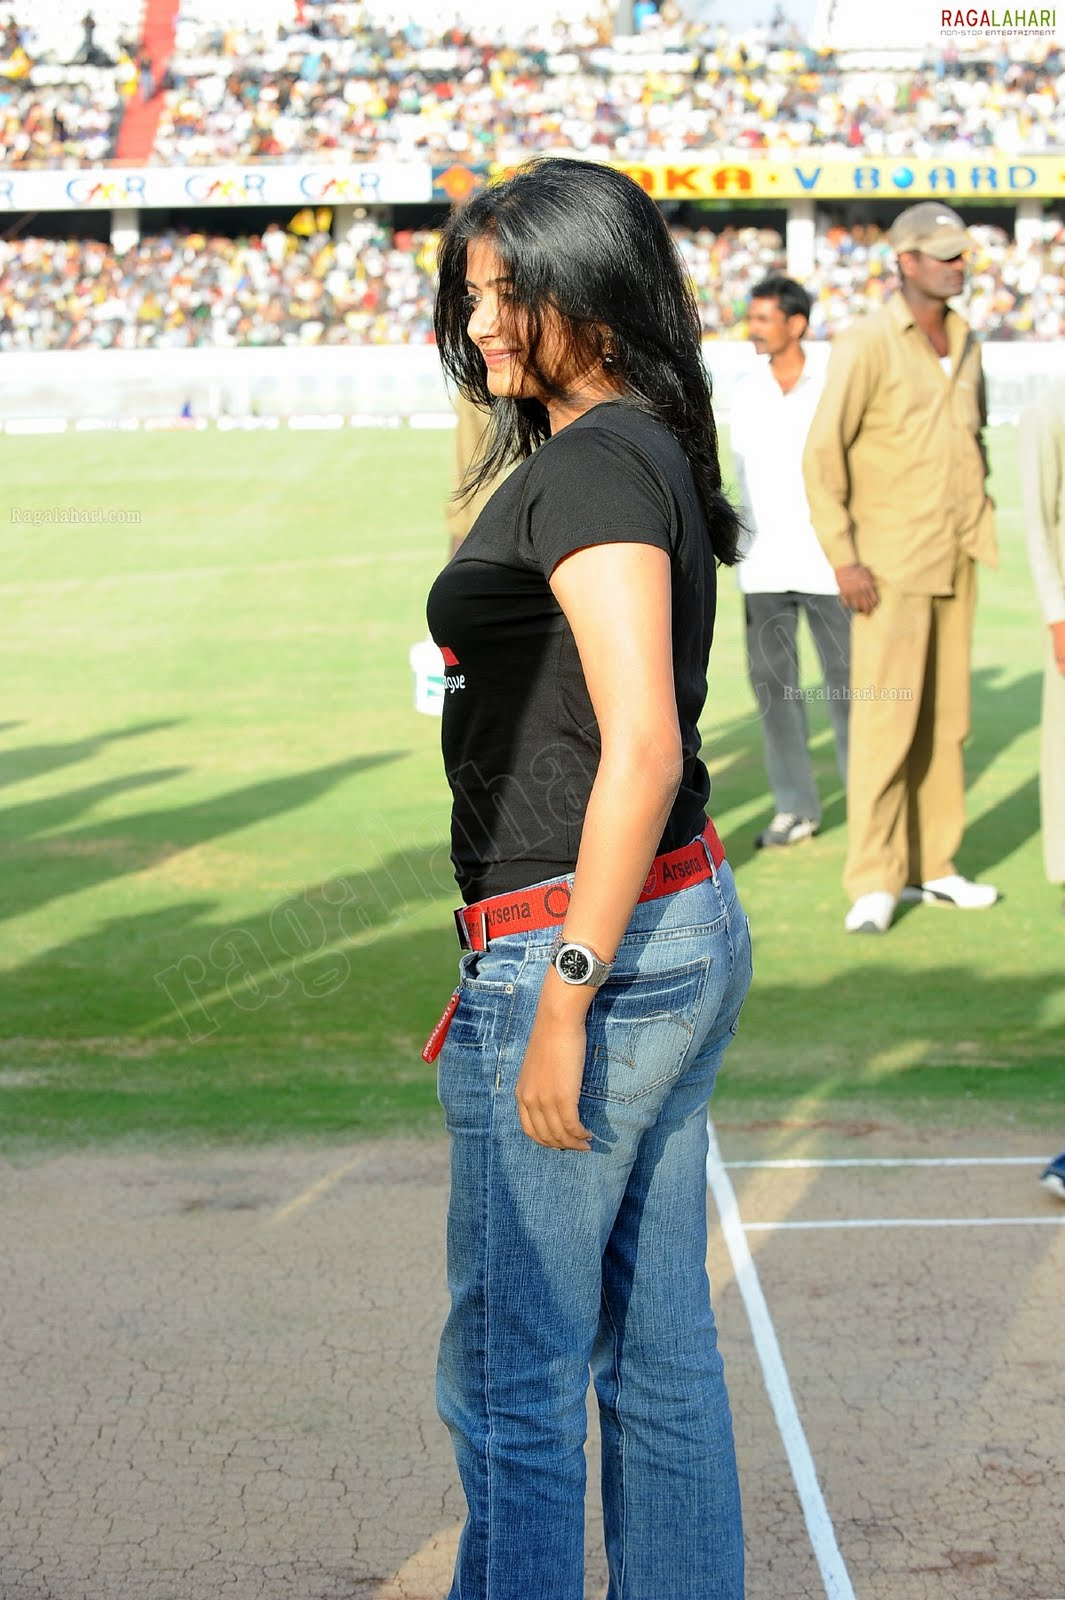 http://3.bp.blogspot.com/-OZM0hm-cSnM/TfoL-Gp6-EI/AAAAAAAAITI/hOL4ehvtino/s1600/priyamani-high-resolution-celebrity-cricket-league24-0014_indian%2Bmasala_01indianmasala.blogspot.com.jpg